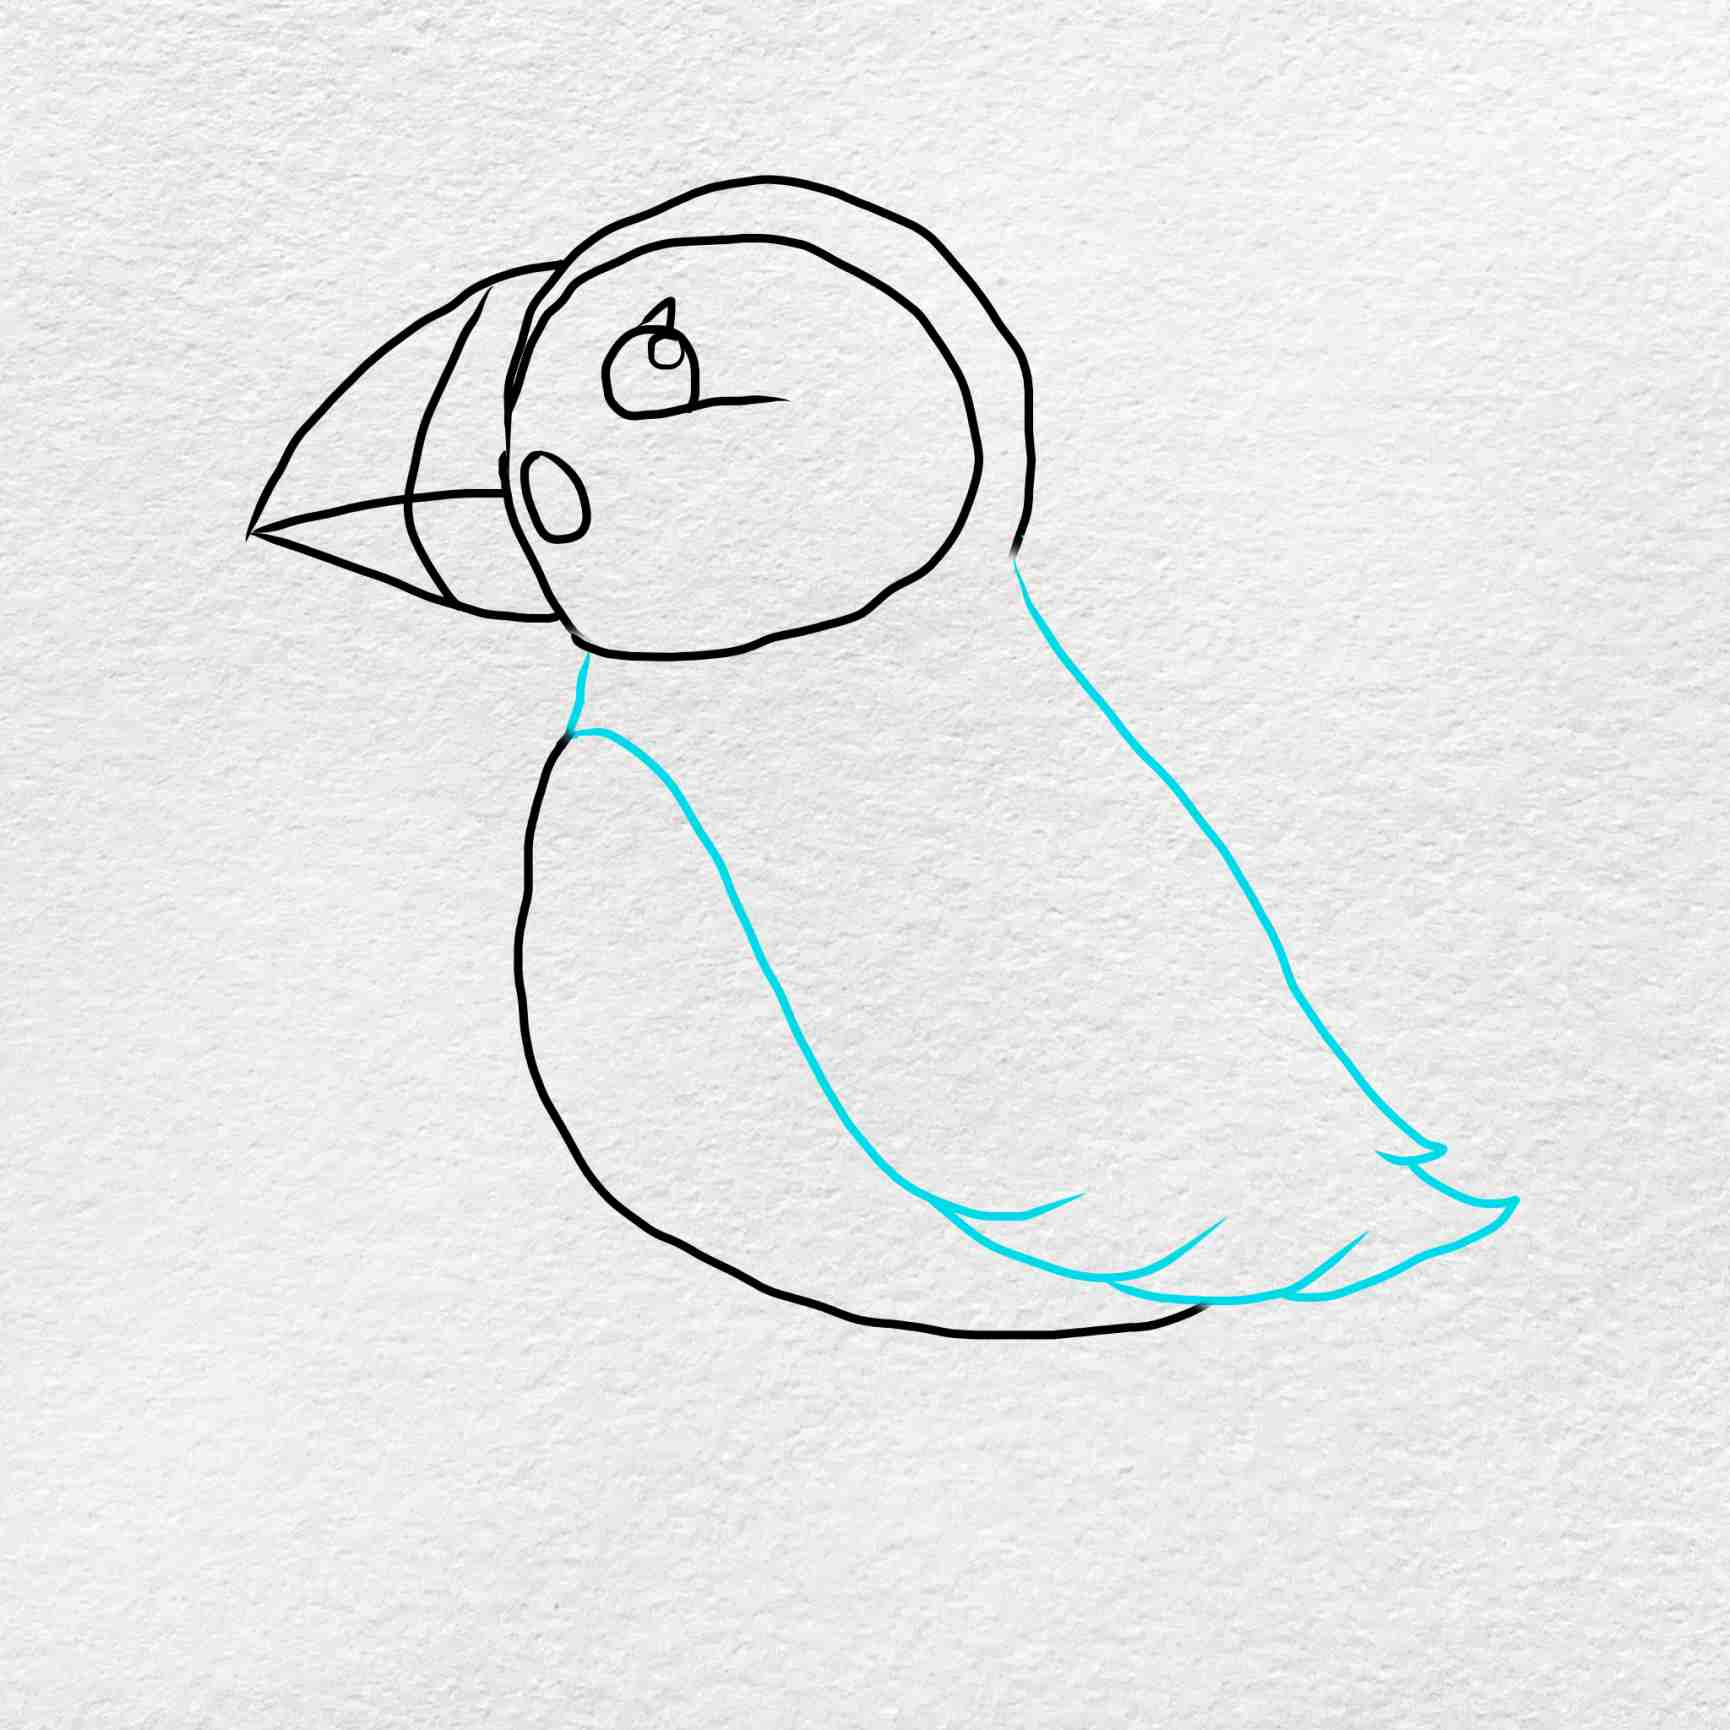 How To Draw Puffin: Step 4